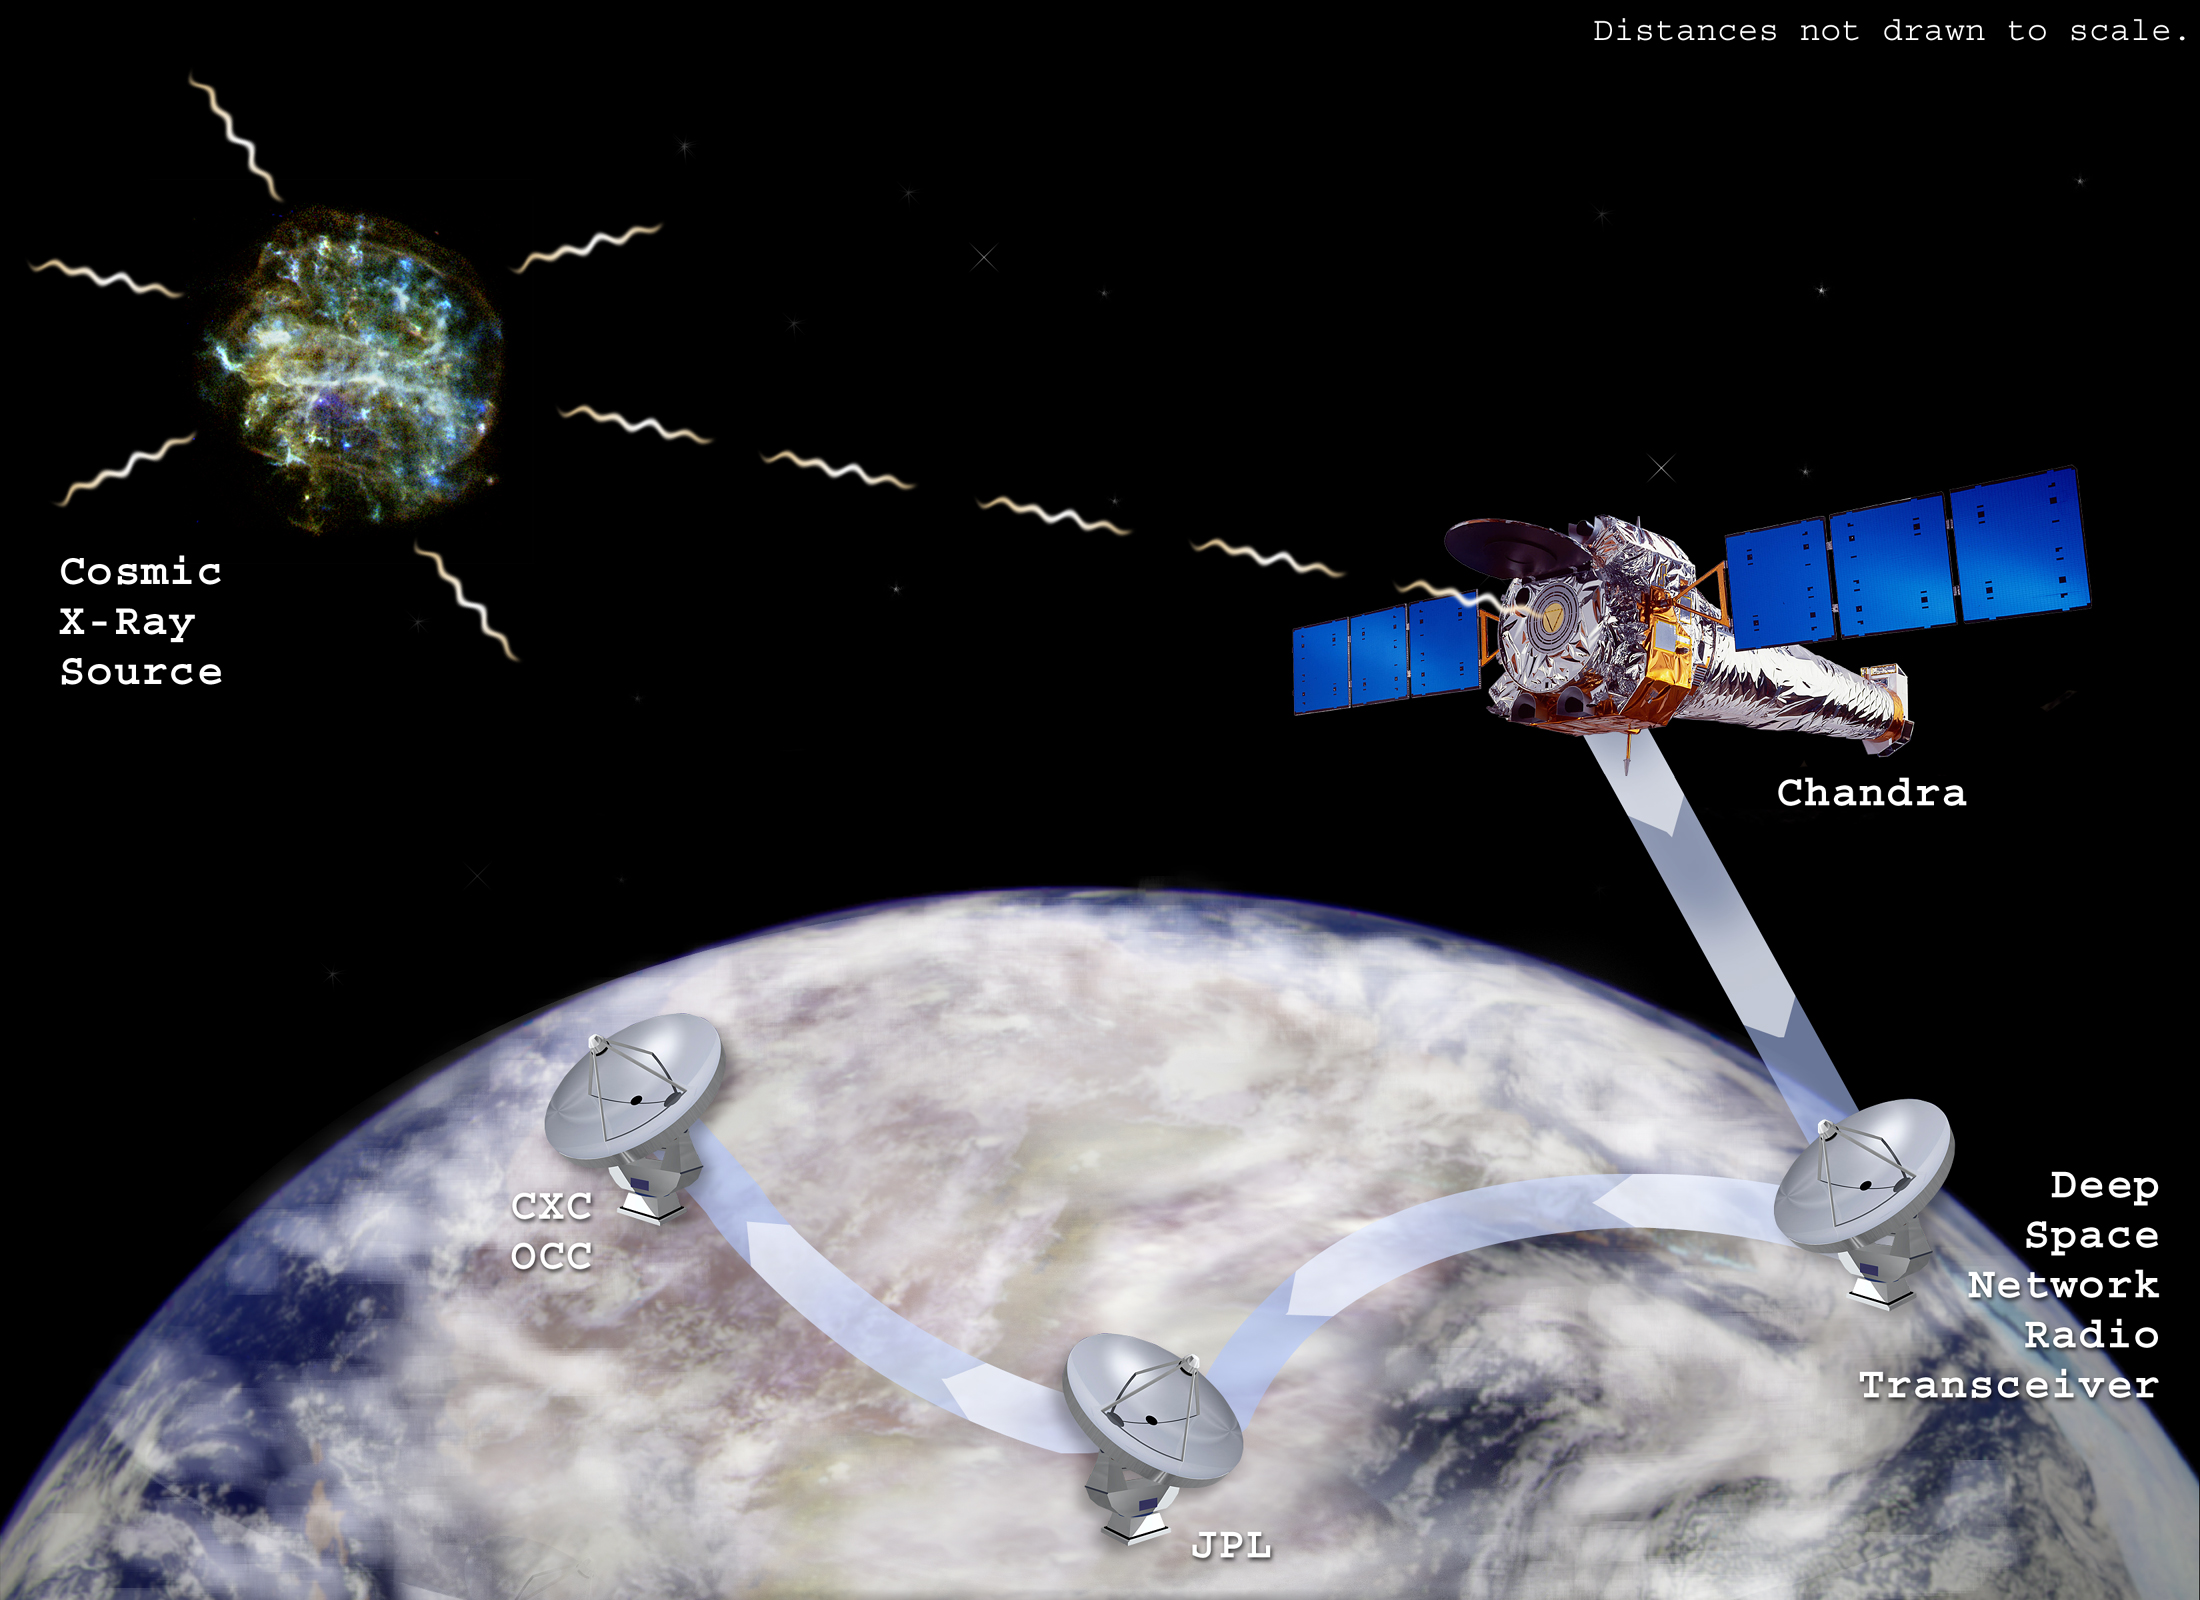 Chandra and the Deep Space Network (DSN), Illustration NASA/CXC/M. Weiss, NASA